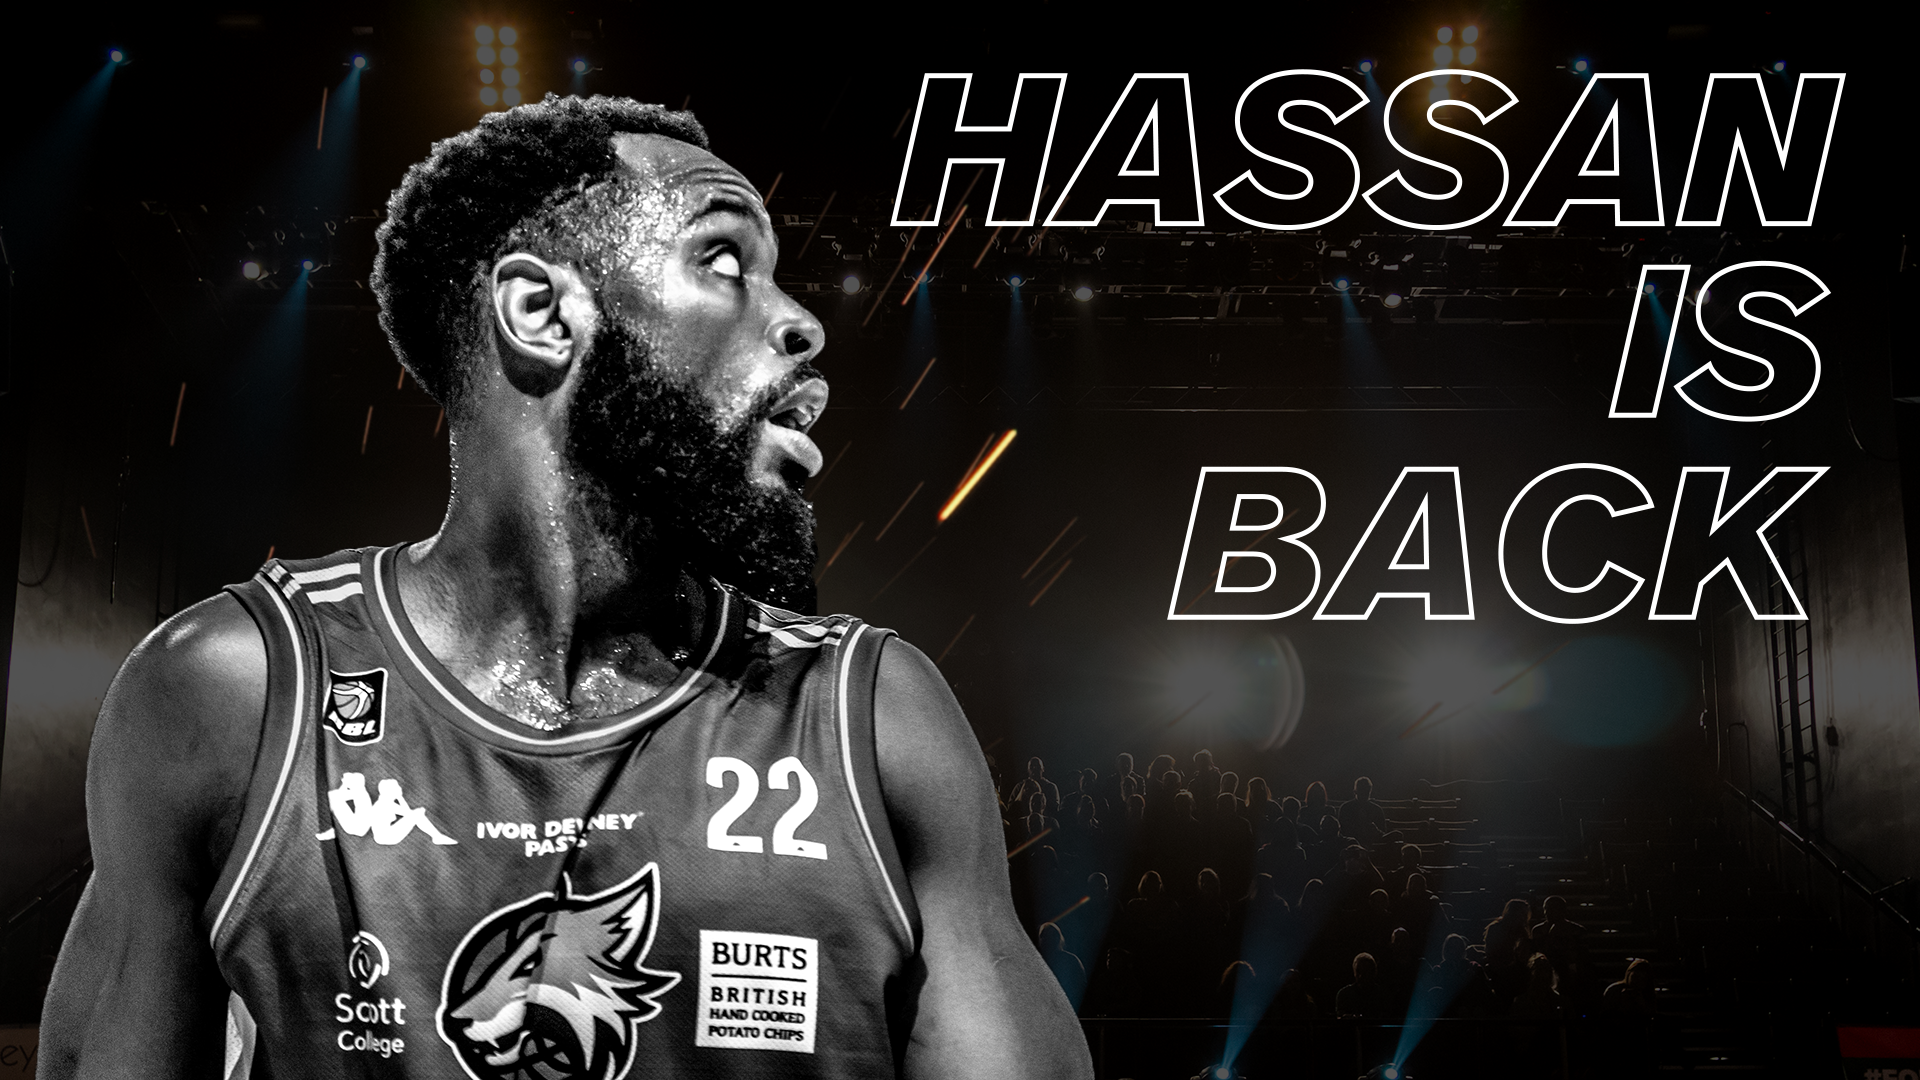 Hassan is Back